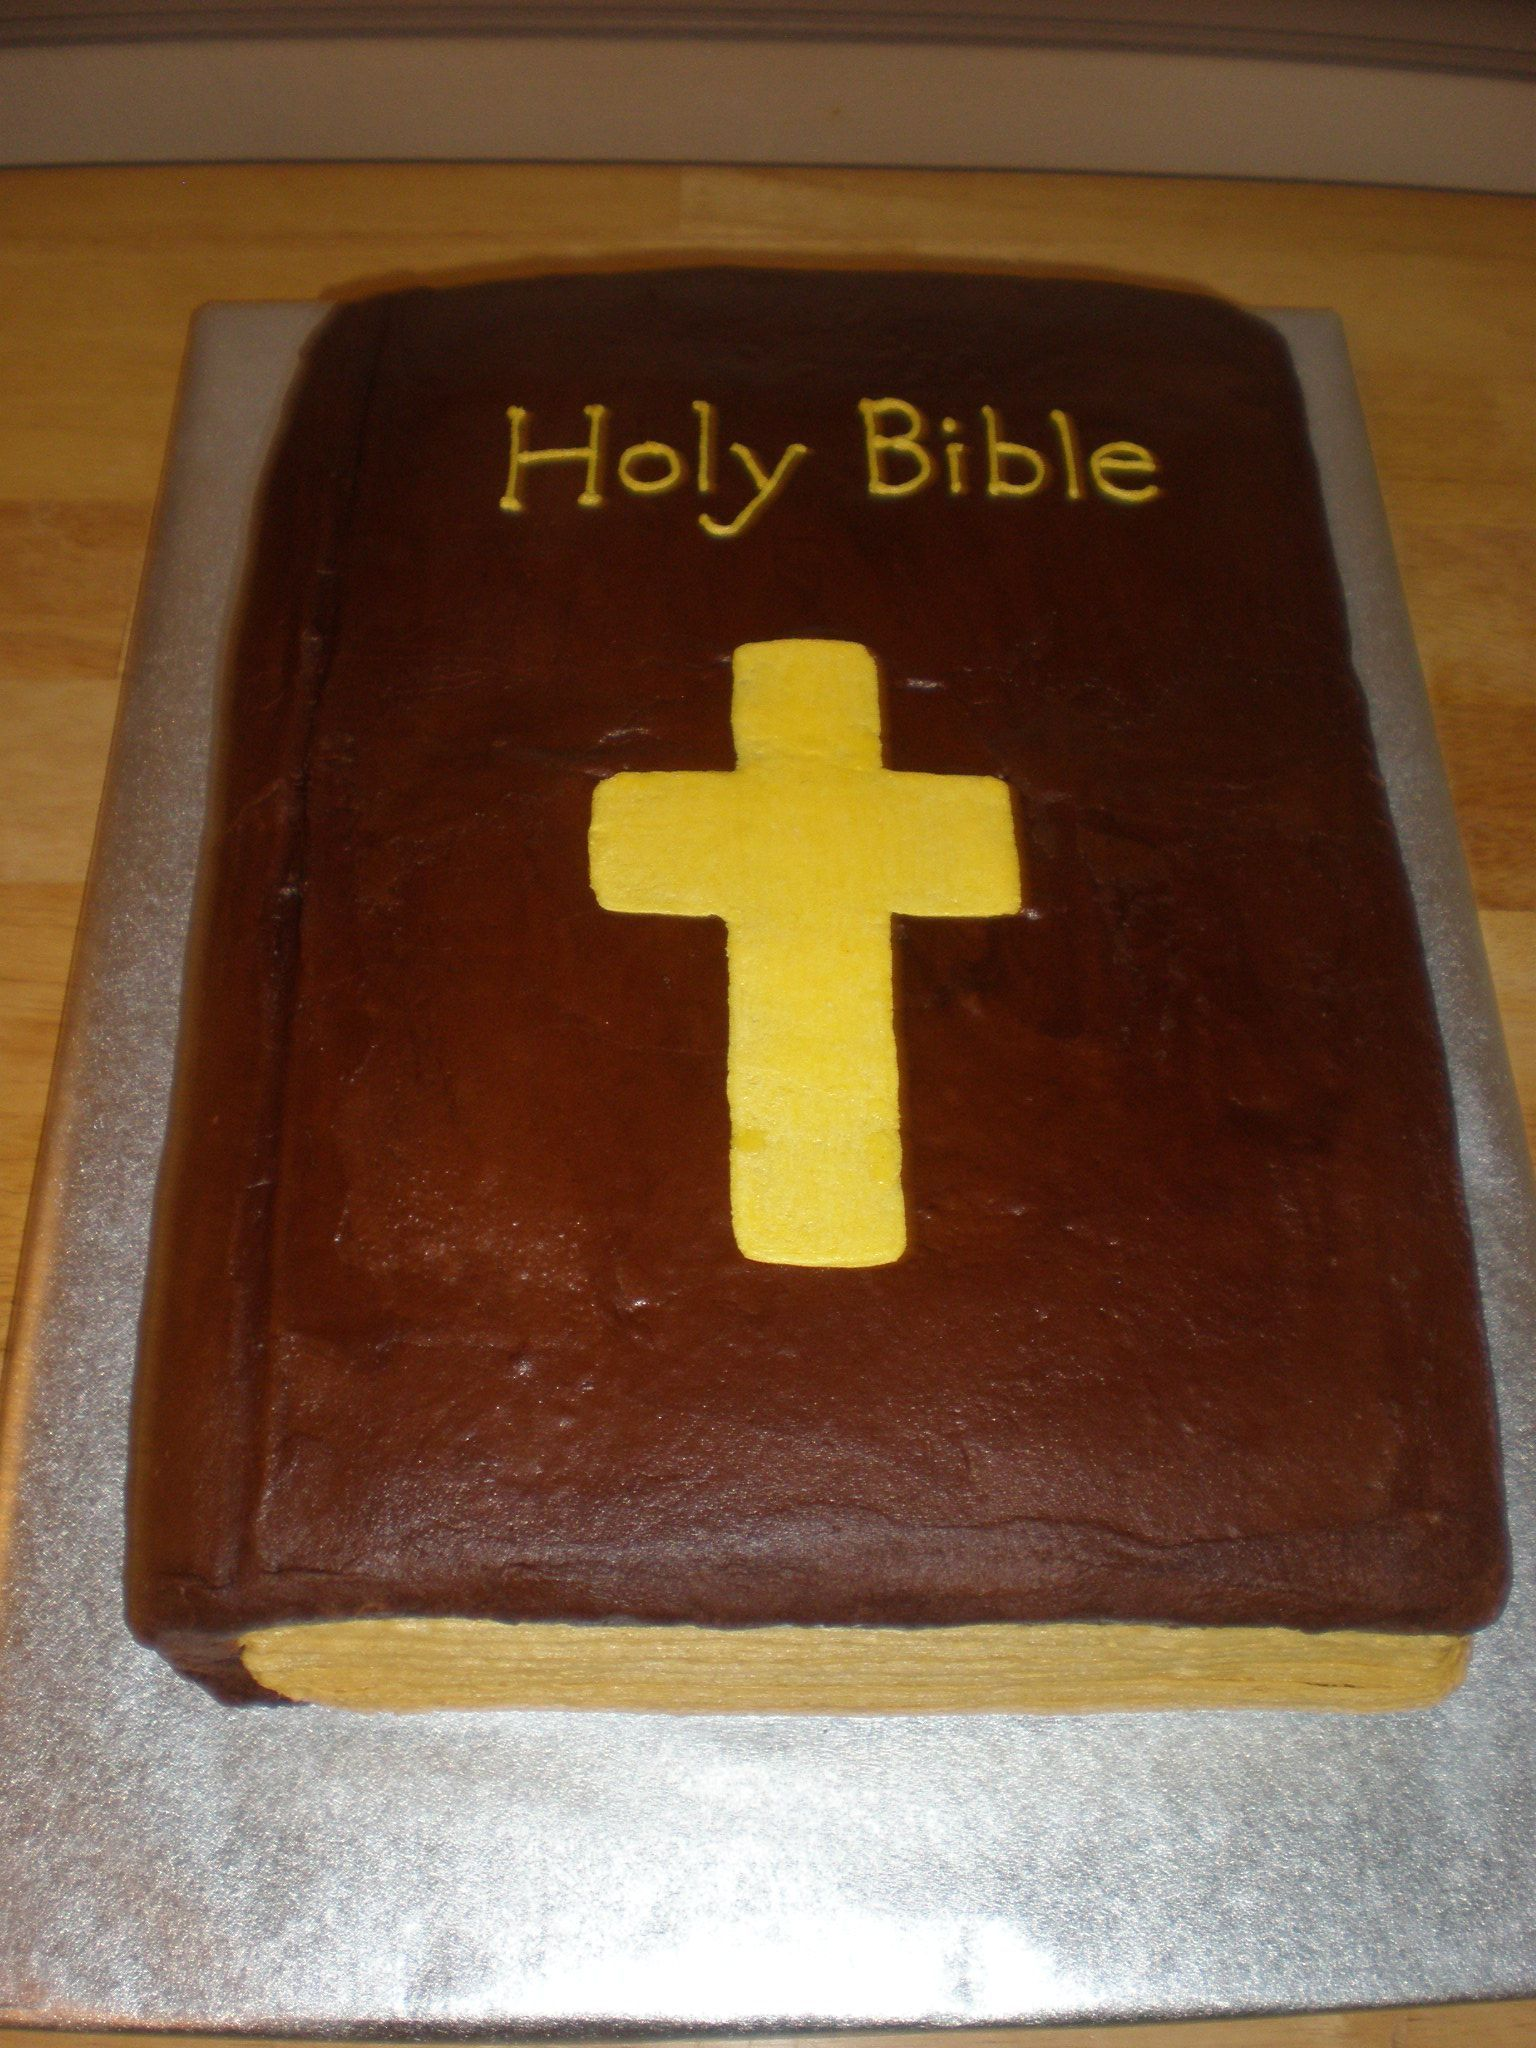 Cake Design For Pastors : Bible cake - Made for Pastor Appreciation Day at church ...